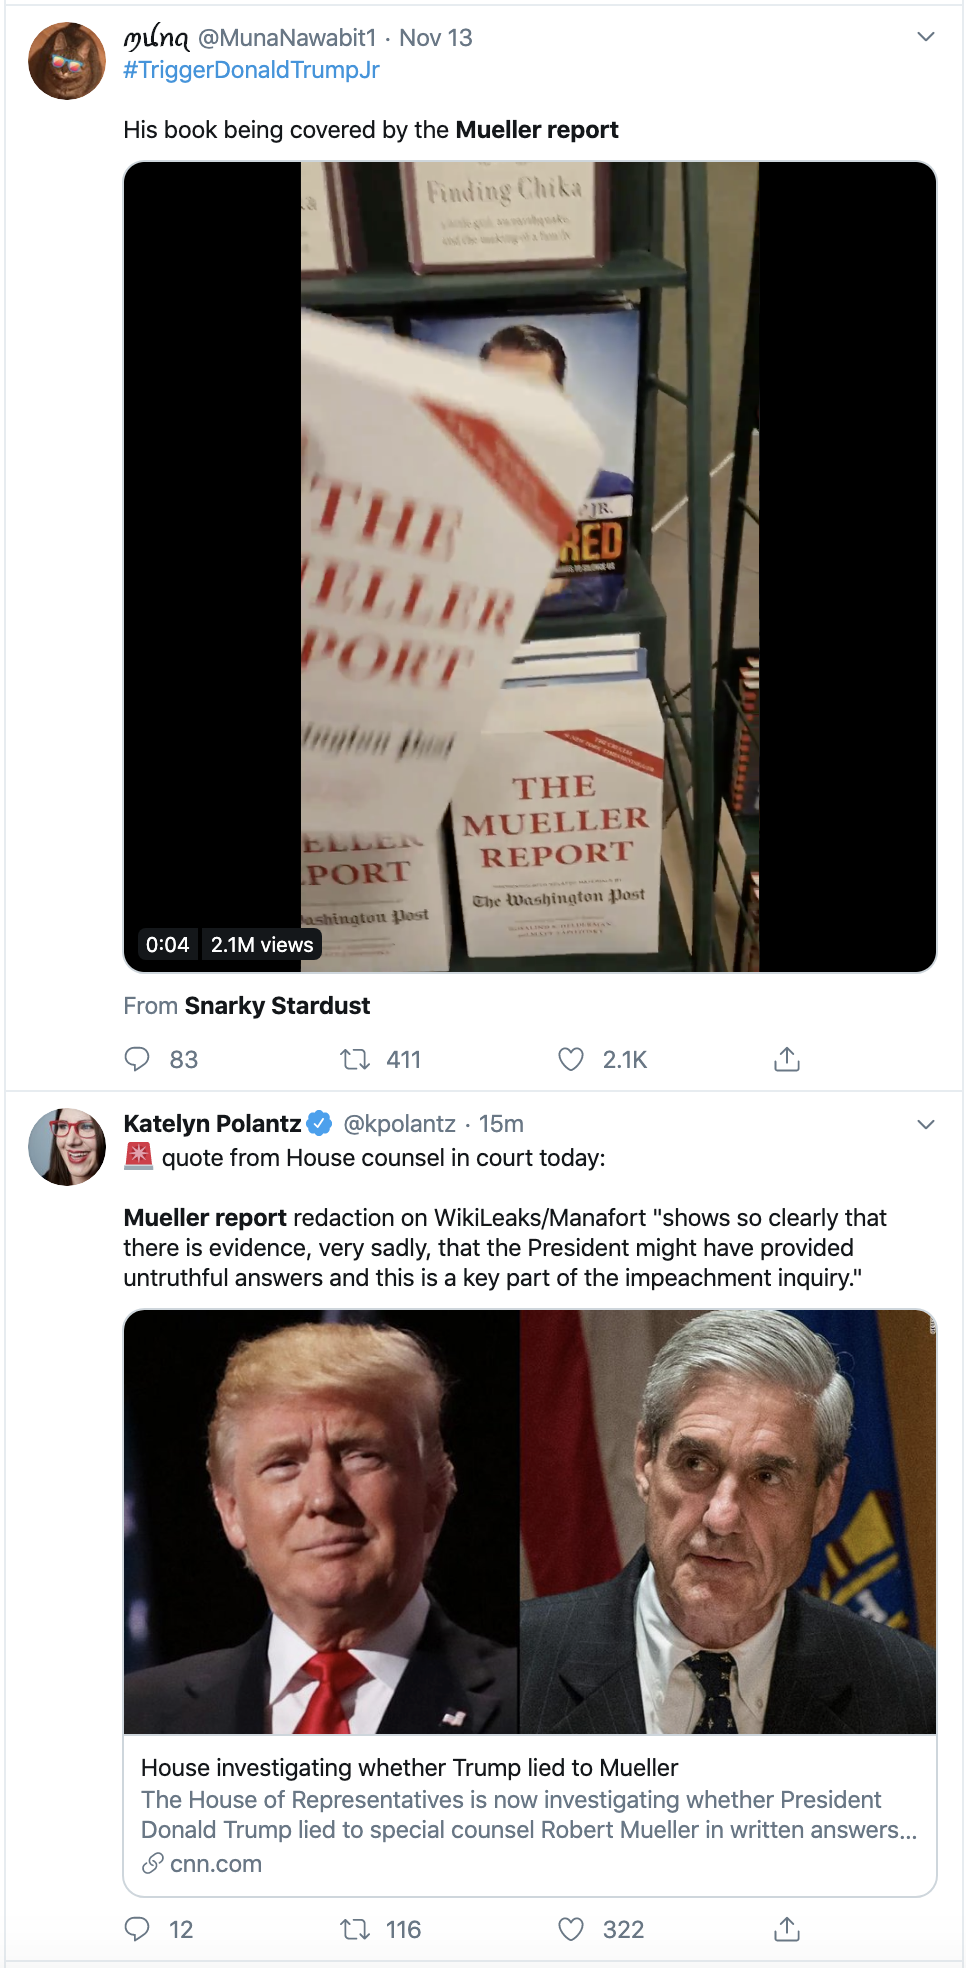 Screen-Shot-2019-11-18-at-12.45.02-PM Democrats Open New Trump/Mueller Investigation Crime Donald Trump Election 2016 Election 2020 Featured Foreign Policy History Impeachment Investigation Mueller National Security Politics Russia Terrorism Top Stories Violence